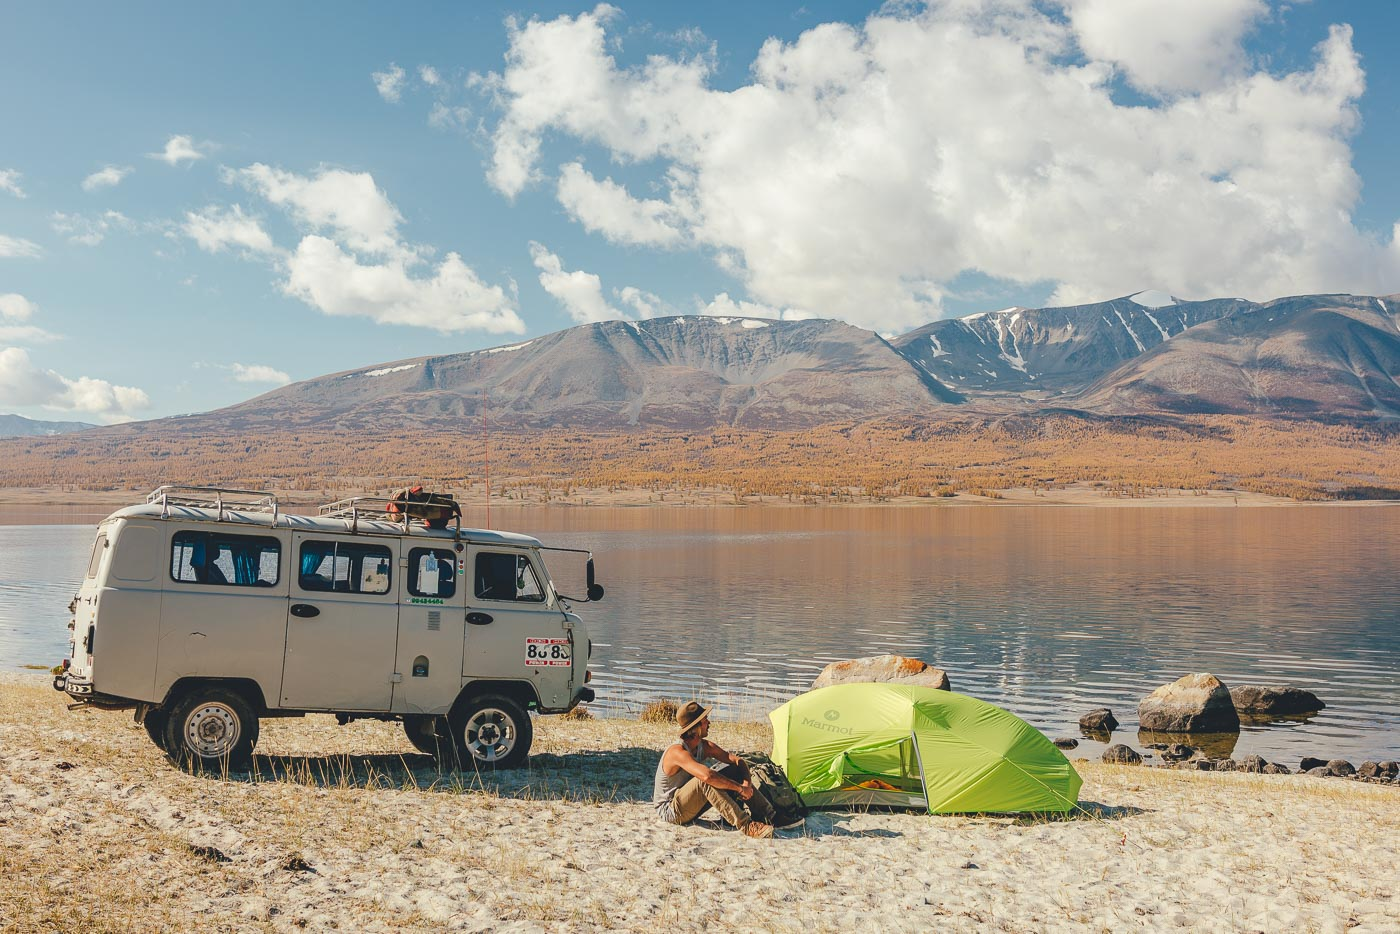 camping next to the lake in Mongolia